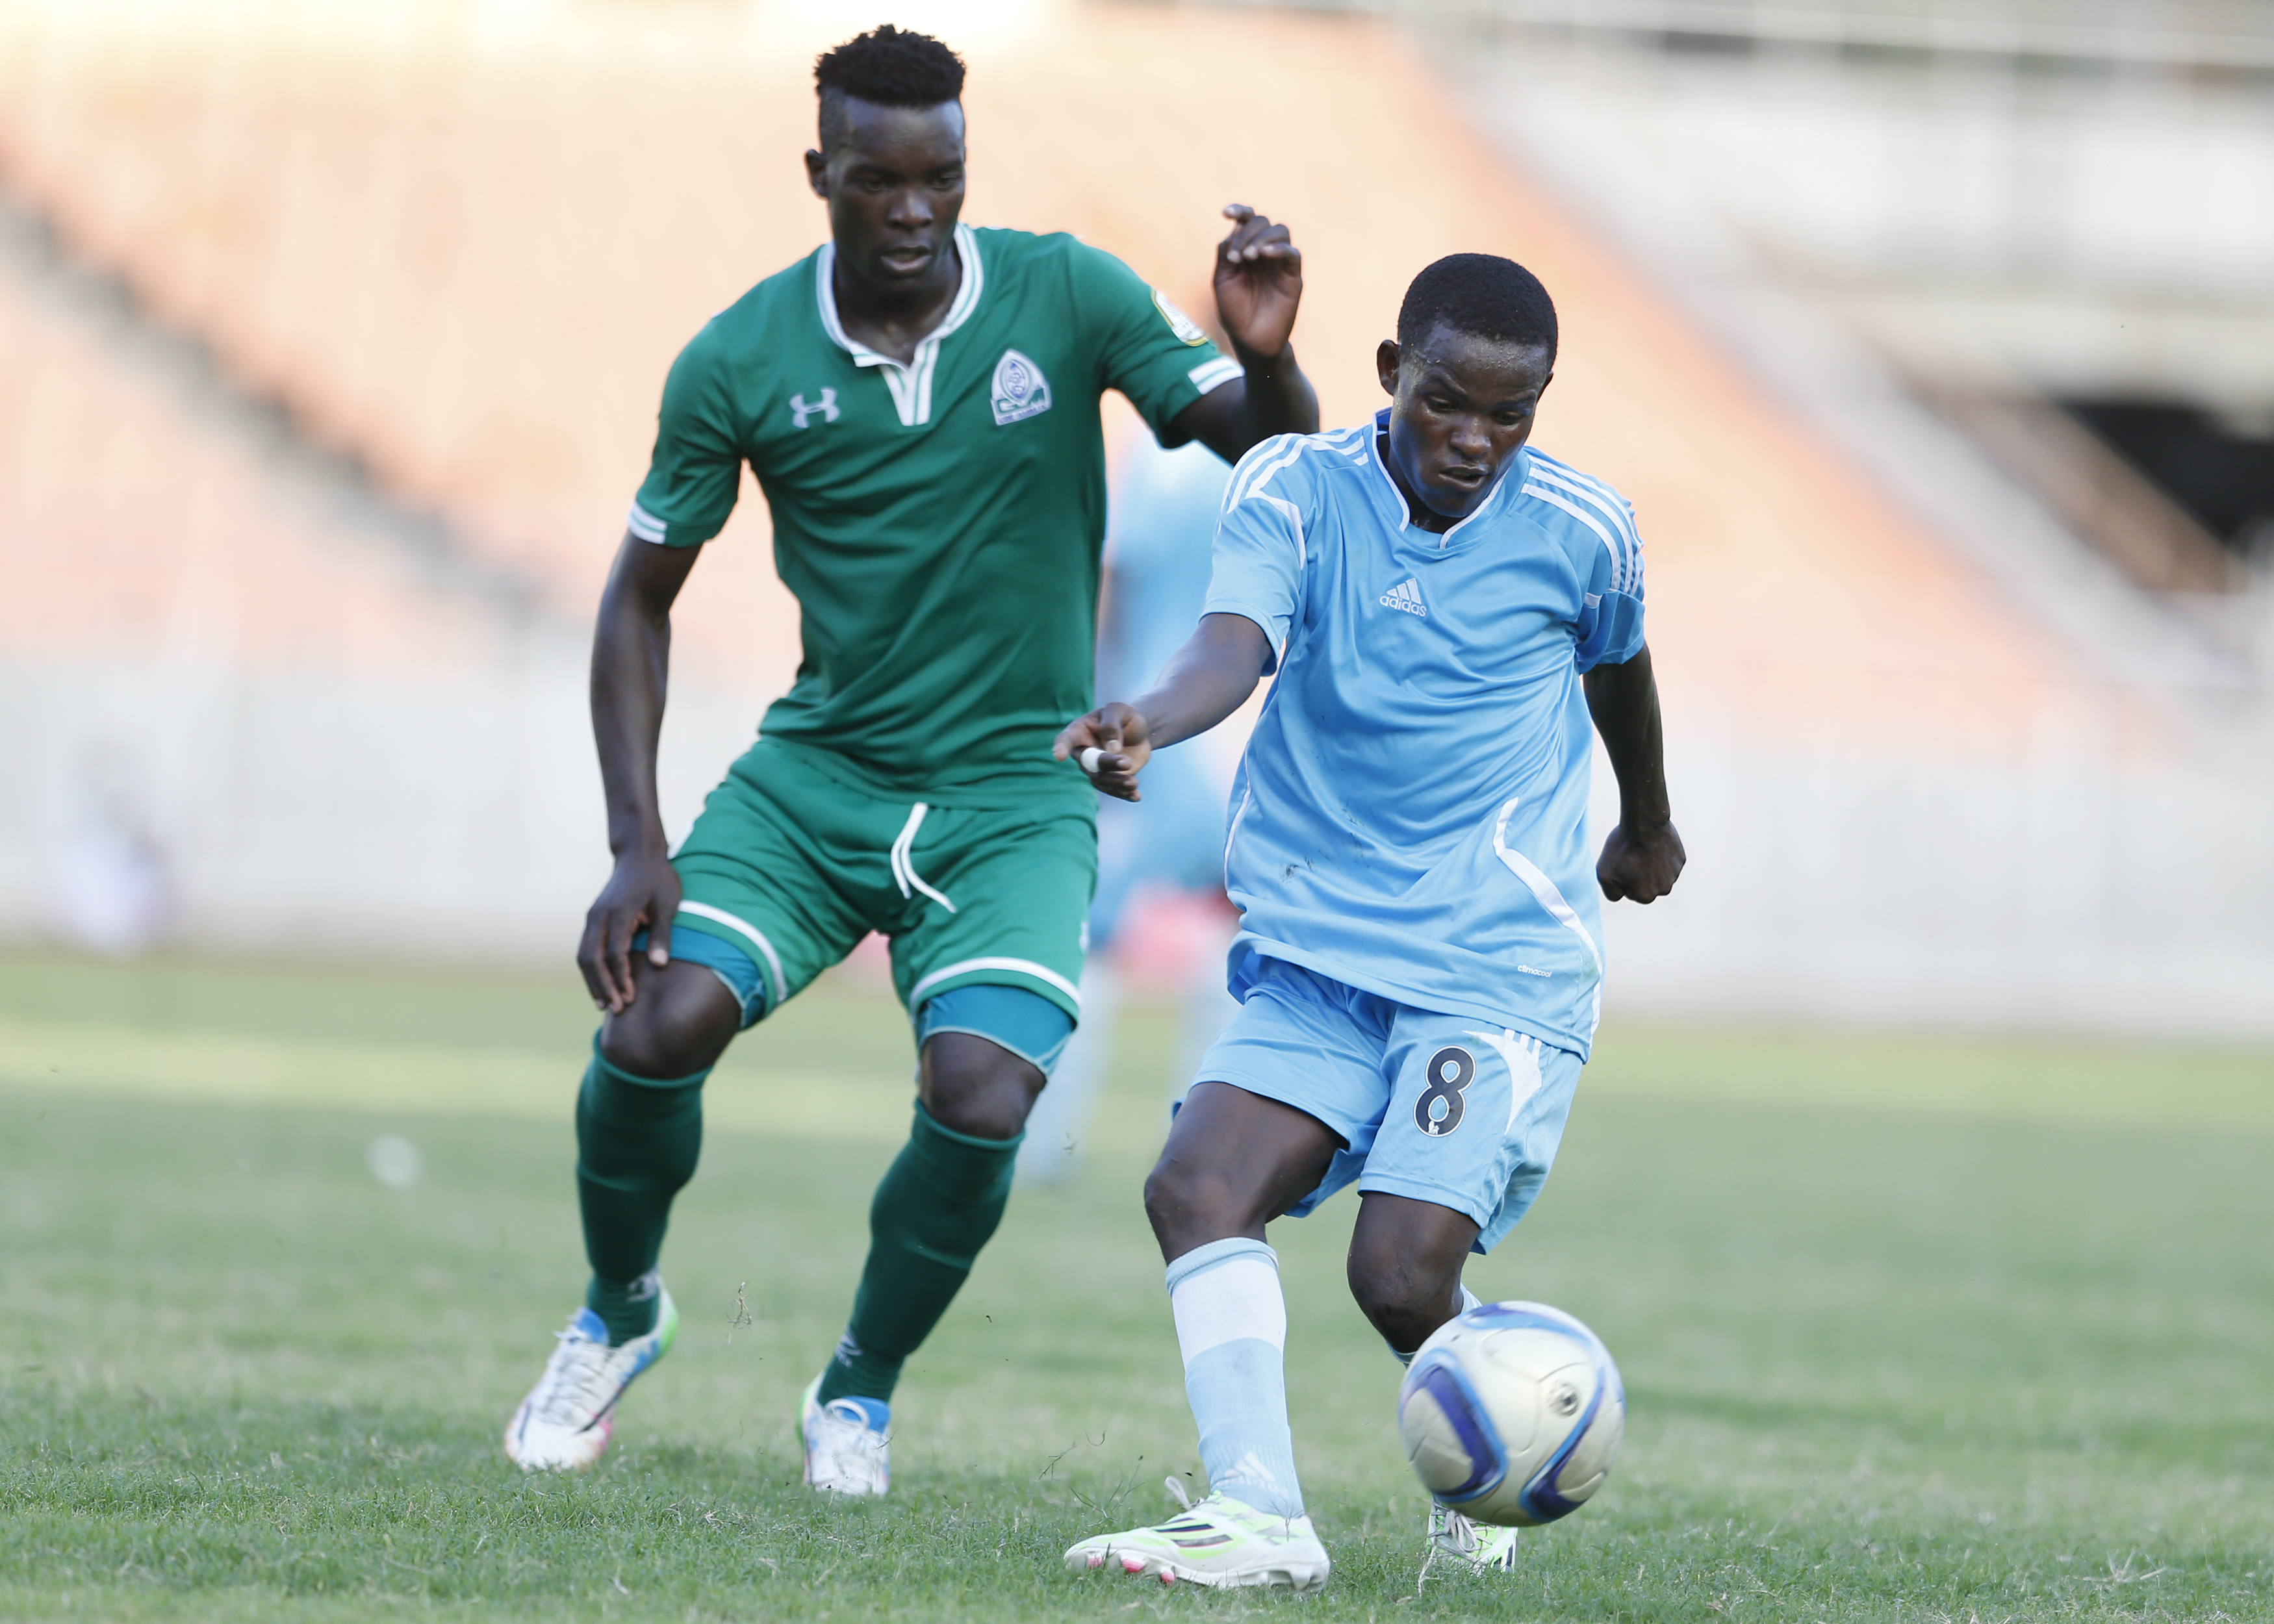 Khalid Aucho (left) of Gor Mahia challenges Juma Mbwana Faki of Zanzibar's KMKM during their Cecafa Kagame Cup club championship match at the National Stadium in Dar-es-Salaam on July 20, 2015. Aucho, now of Church Hill Brothers FC, India is in the Uganda Cranes squad for the 2019 AFCON